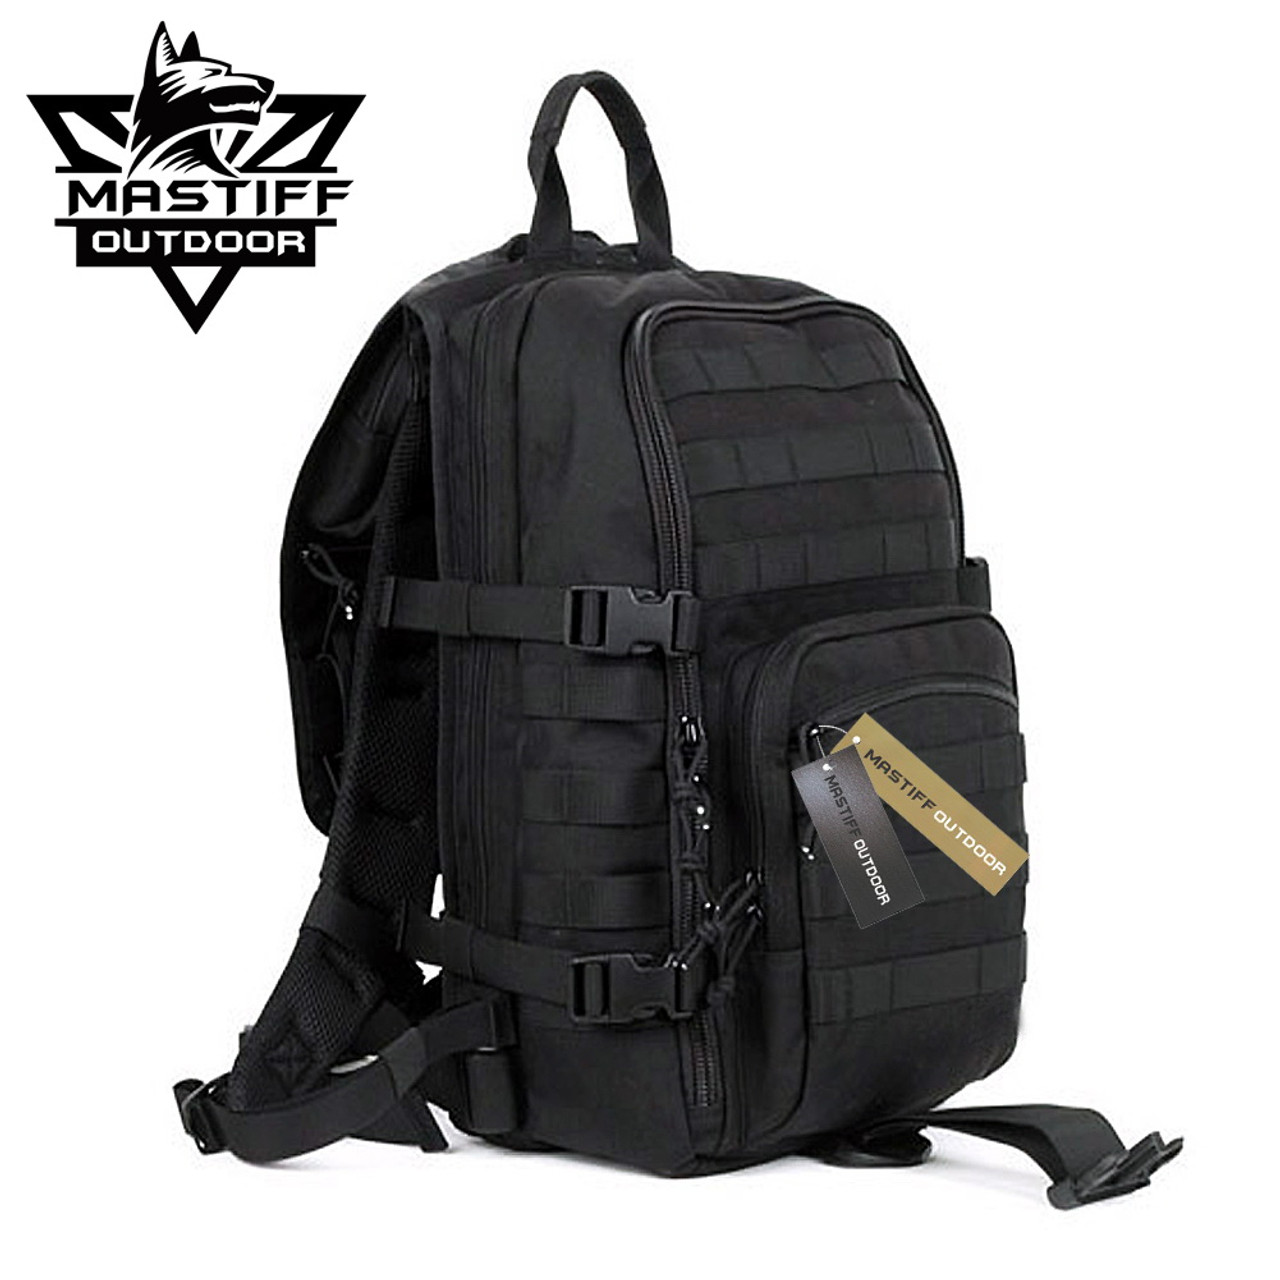 23b7927a8 Mastiff Outdoor Tactical Venture Backpack Military MOLLE Camping Rucksack -  Sword N Armory